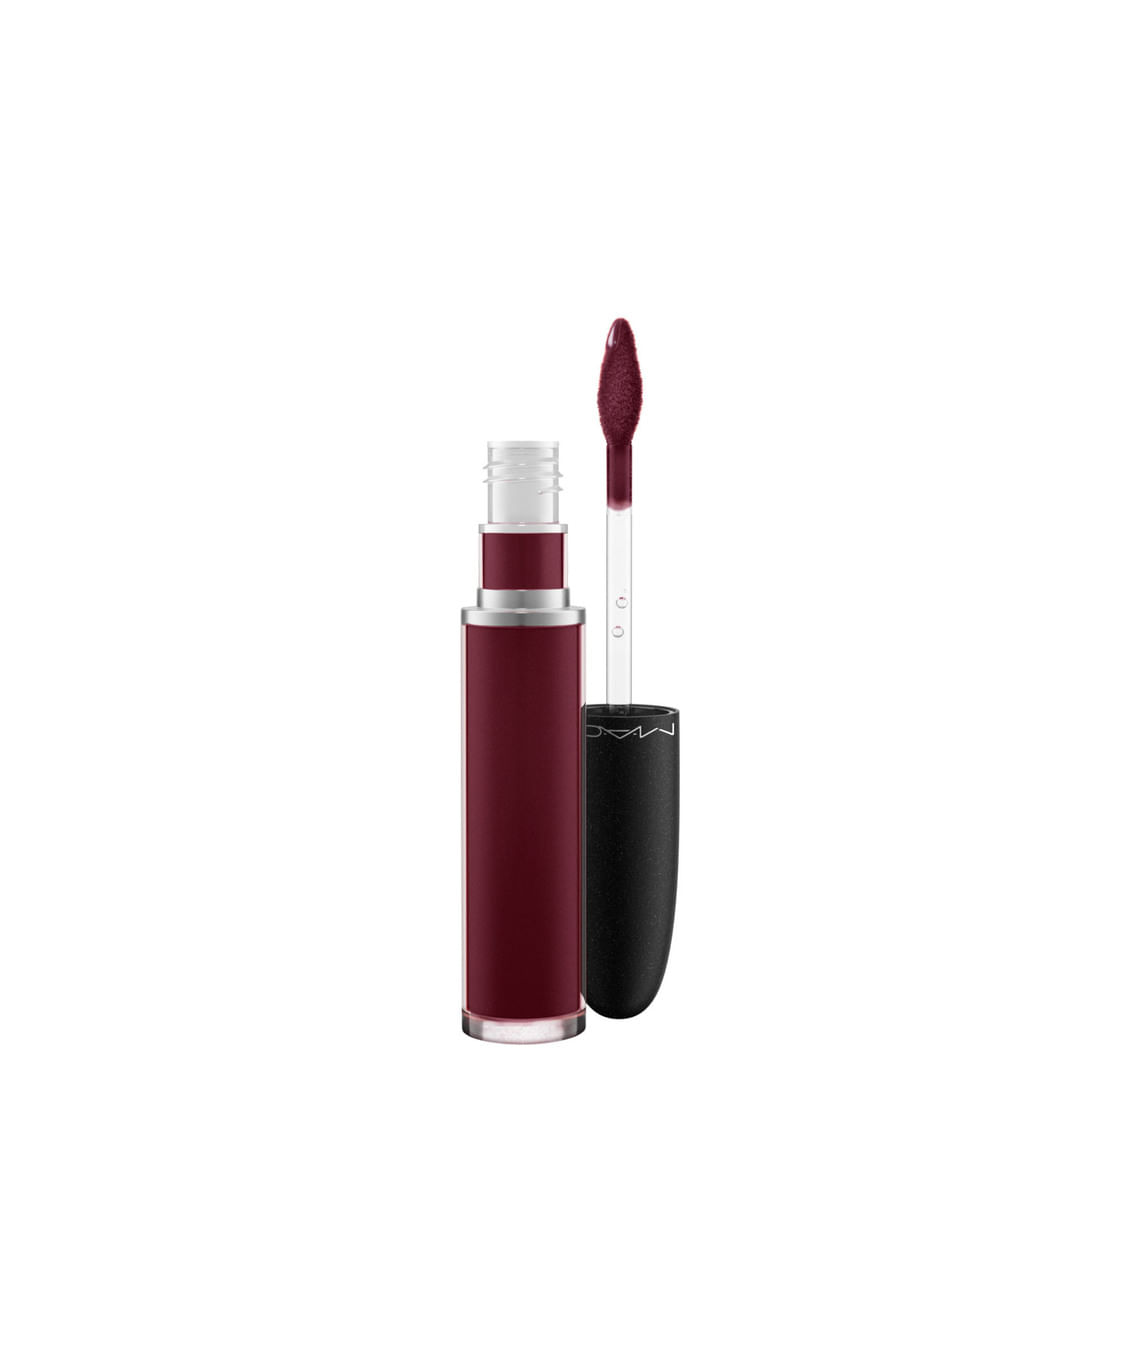 Labial Retro Matte Liquid Lipcolour High Drama 5 ml